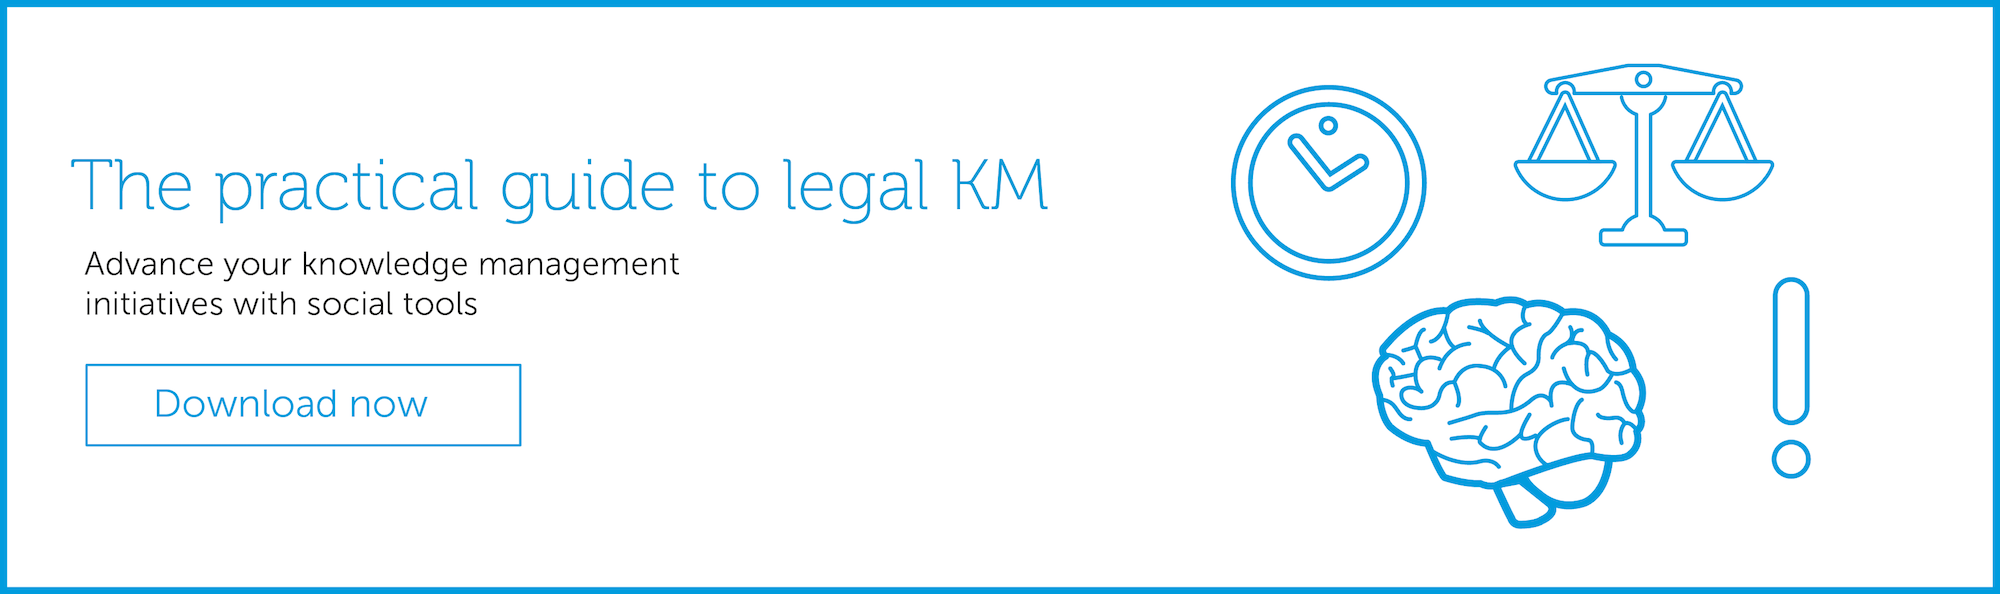 The practical guide to legal KM